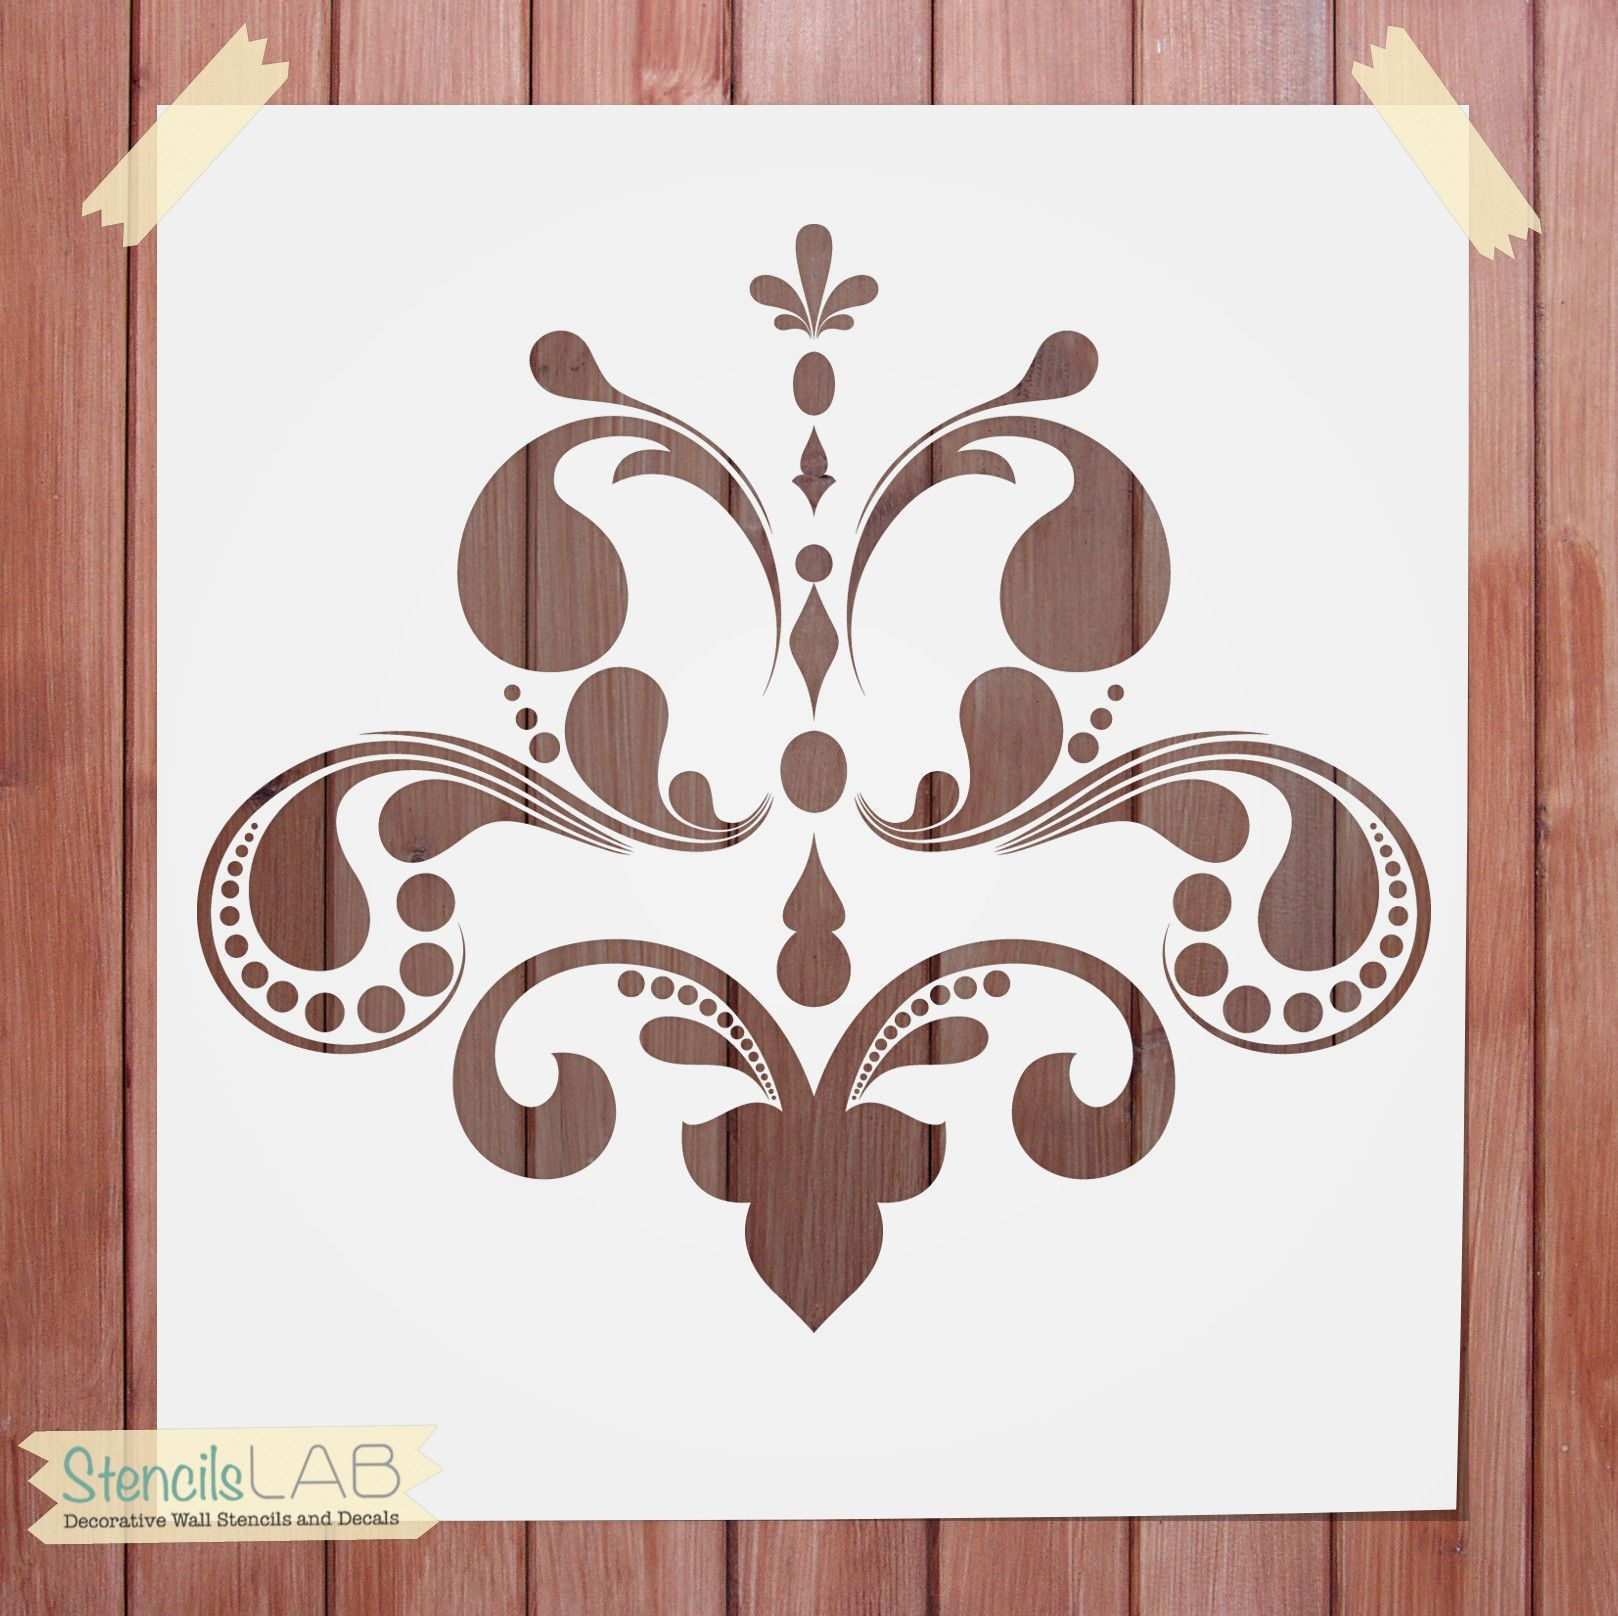 The use of our intense damask pattern stencils on large wall the use of our intense damask pattern stencils on large wall surfaces can fulfill otherwise bland amipublicfo Image collections